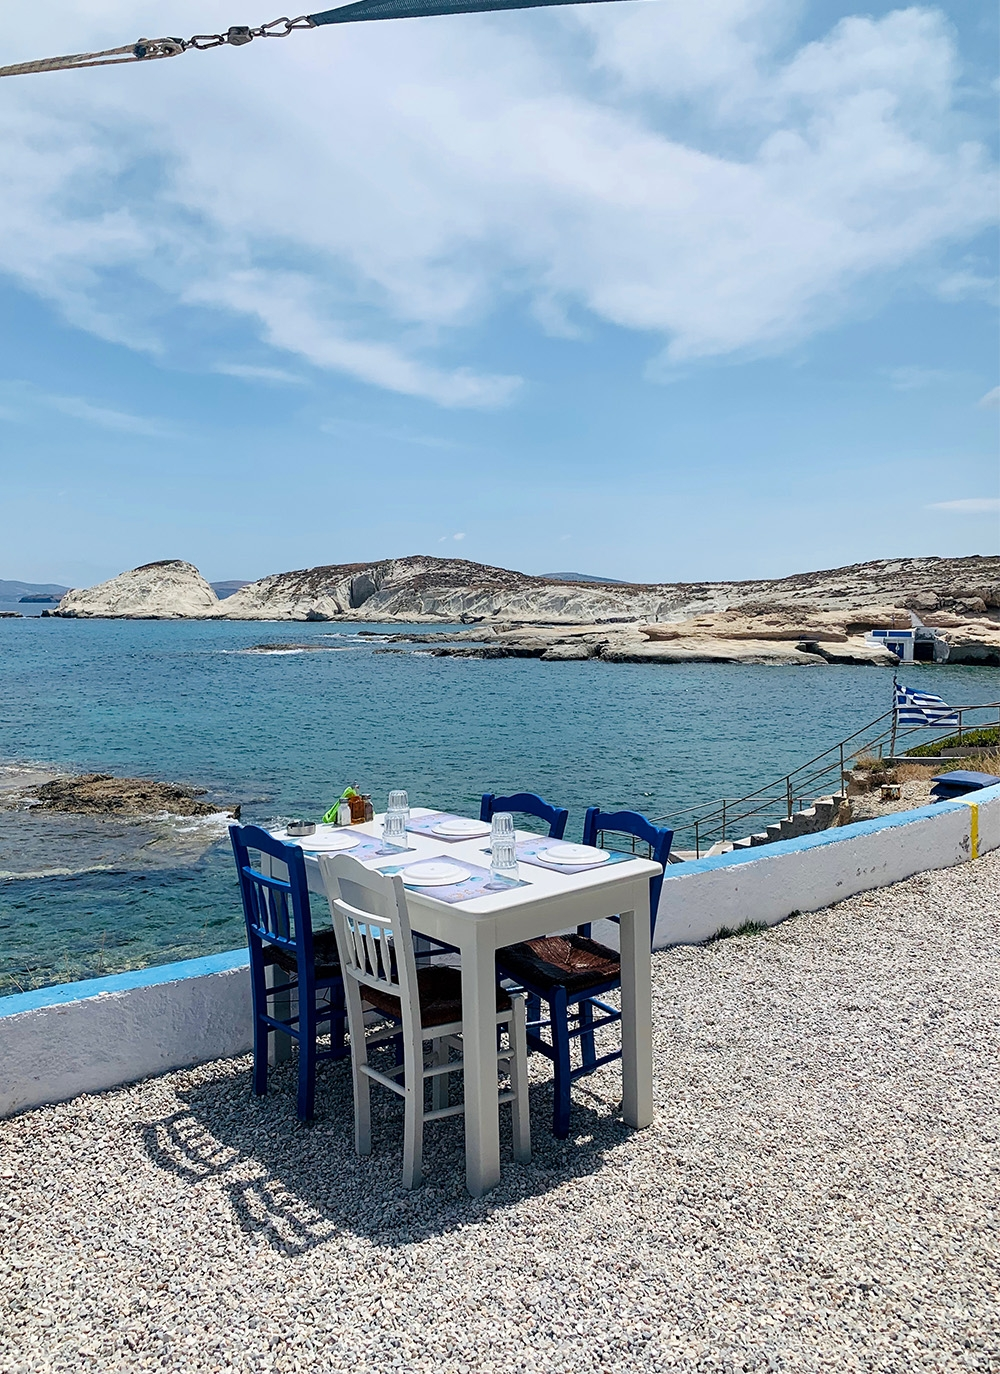 A single white table sits next to the ocean, set with plates, cutlery and glasses ready for lunch.